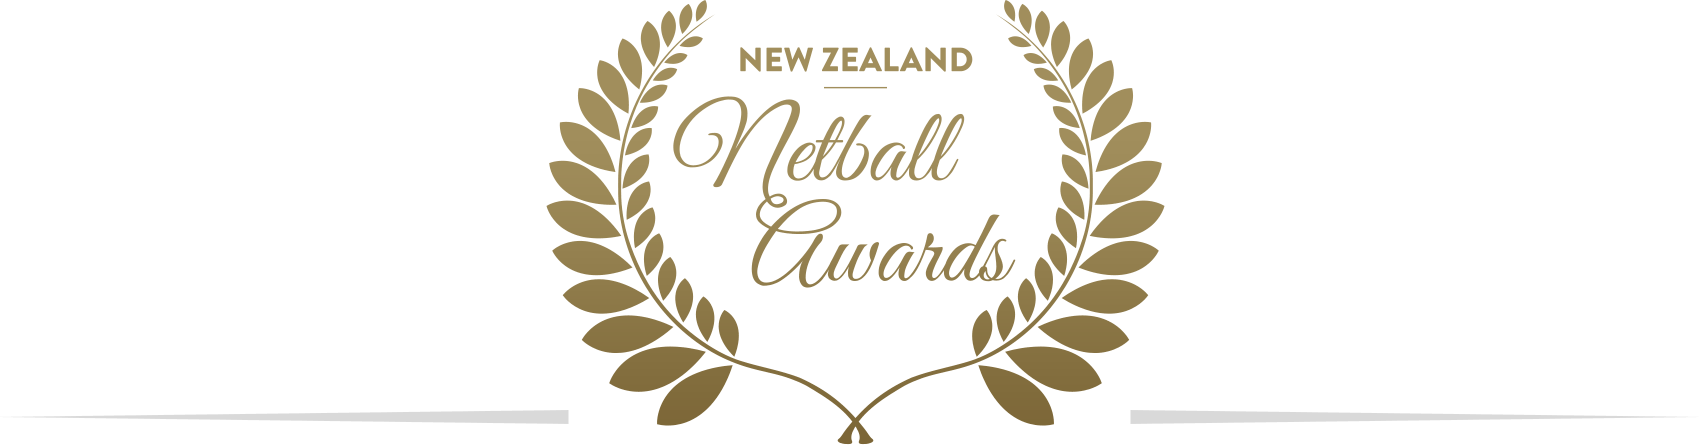 New Zealand Netball Awards 2015